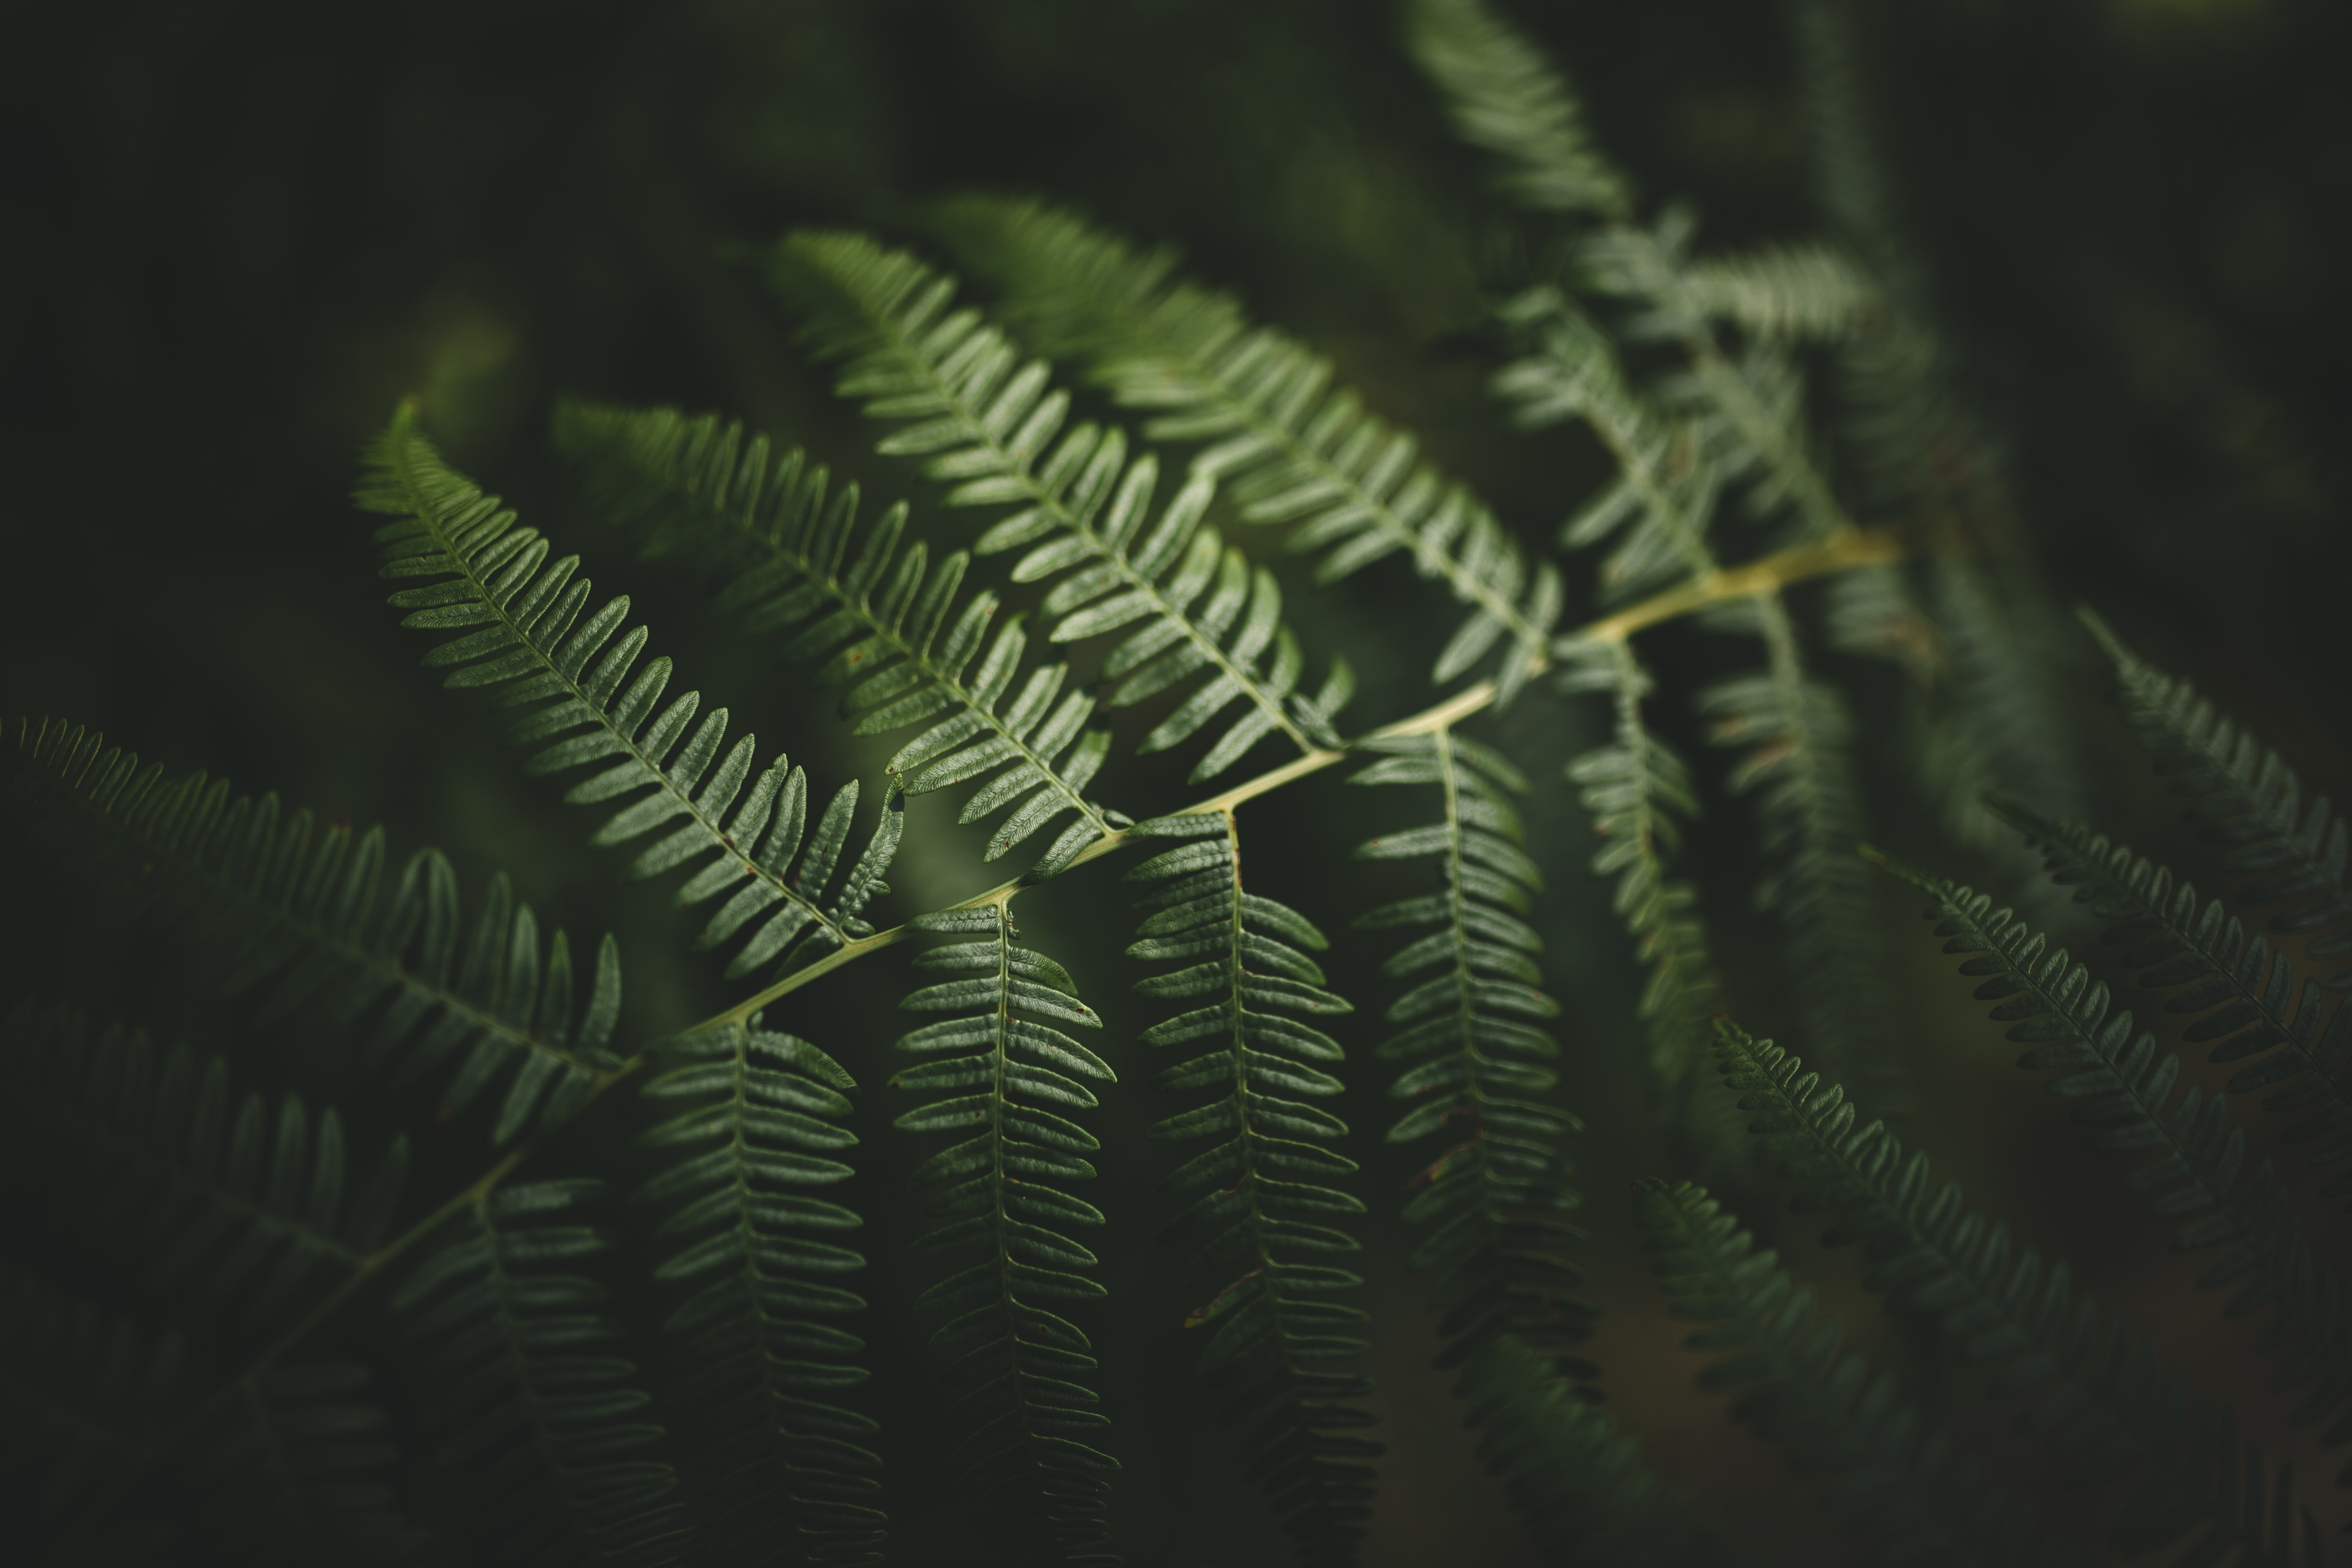 green fern plant surrounded by darkness